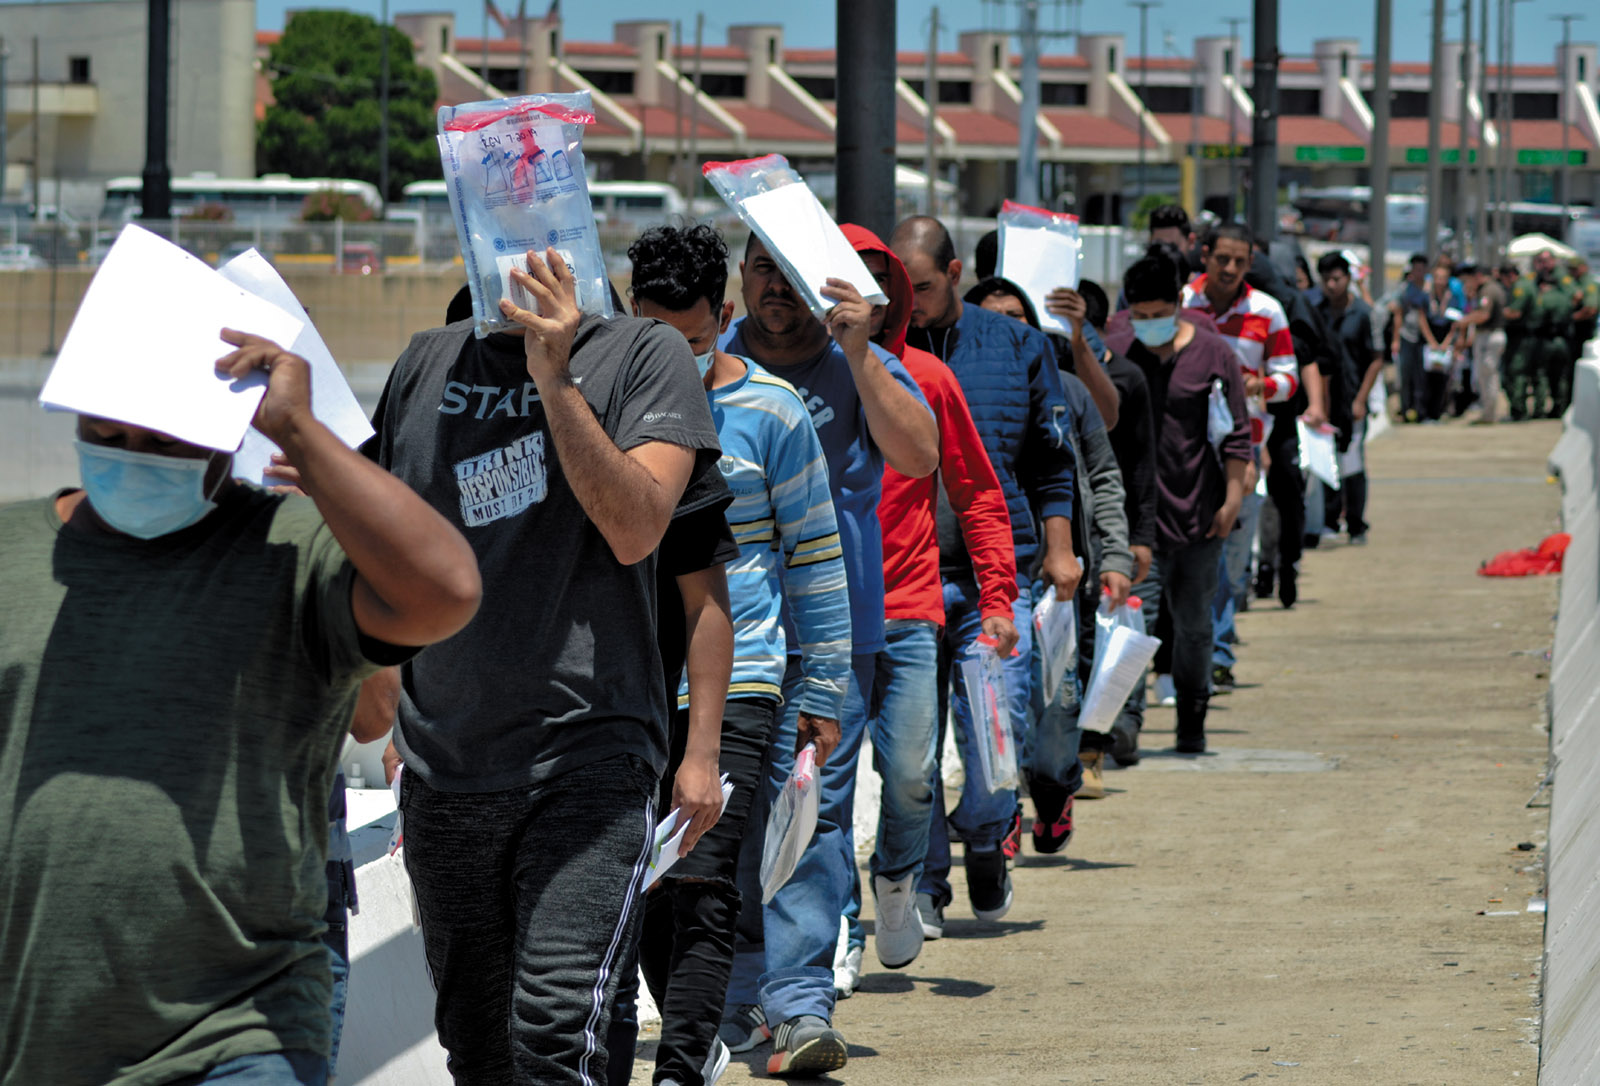 Migrants being returned to Mexico by United States Border Patrol officers under the Migration Protection Protocols, or Remain in Mexico program, Nuevo Laredo, Mexico, July 2019